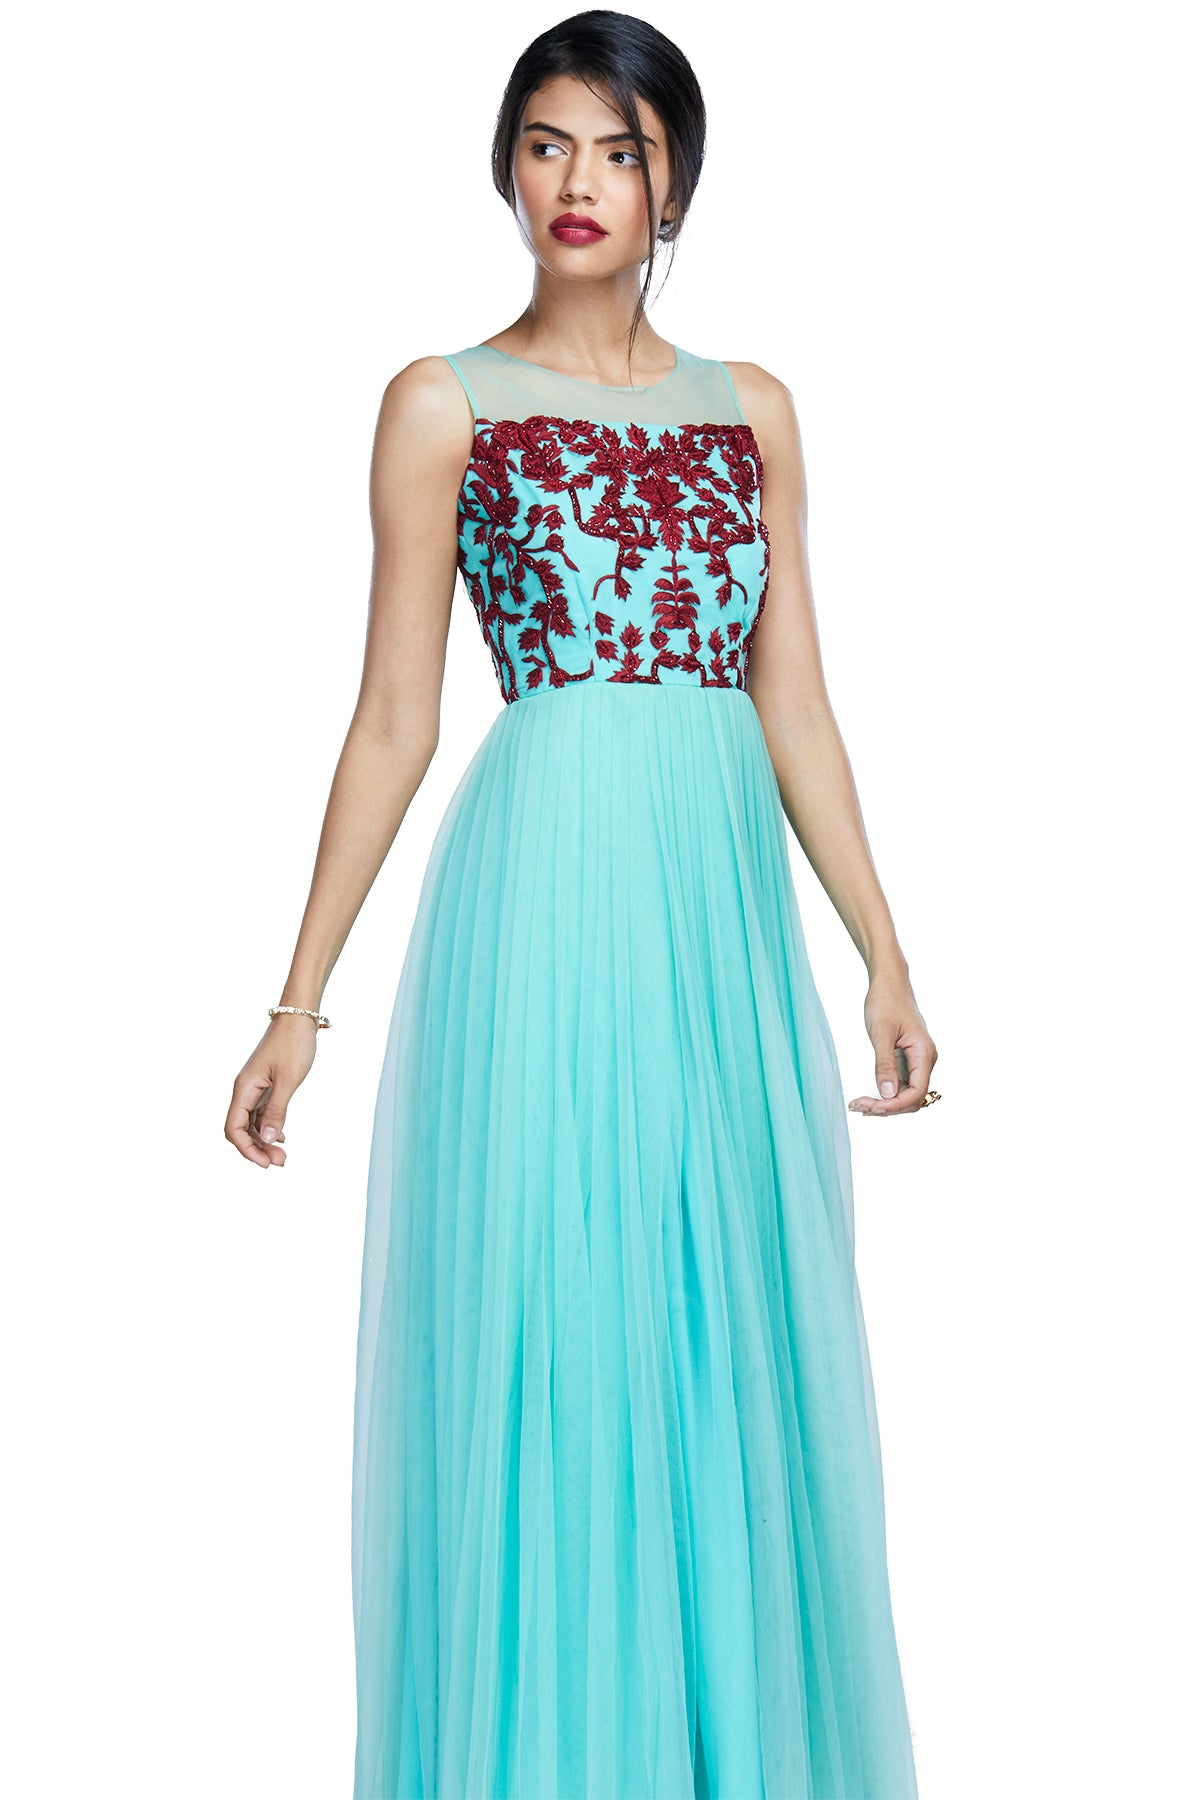 You're mint to stand out in this flouncy mint gown with a tinge of red embroidery to seal the deal. The outfit has a net bodice and plain tulle bottom.